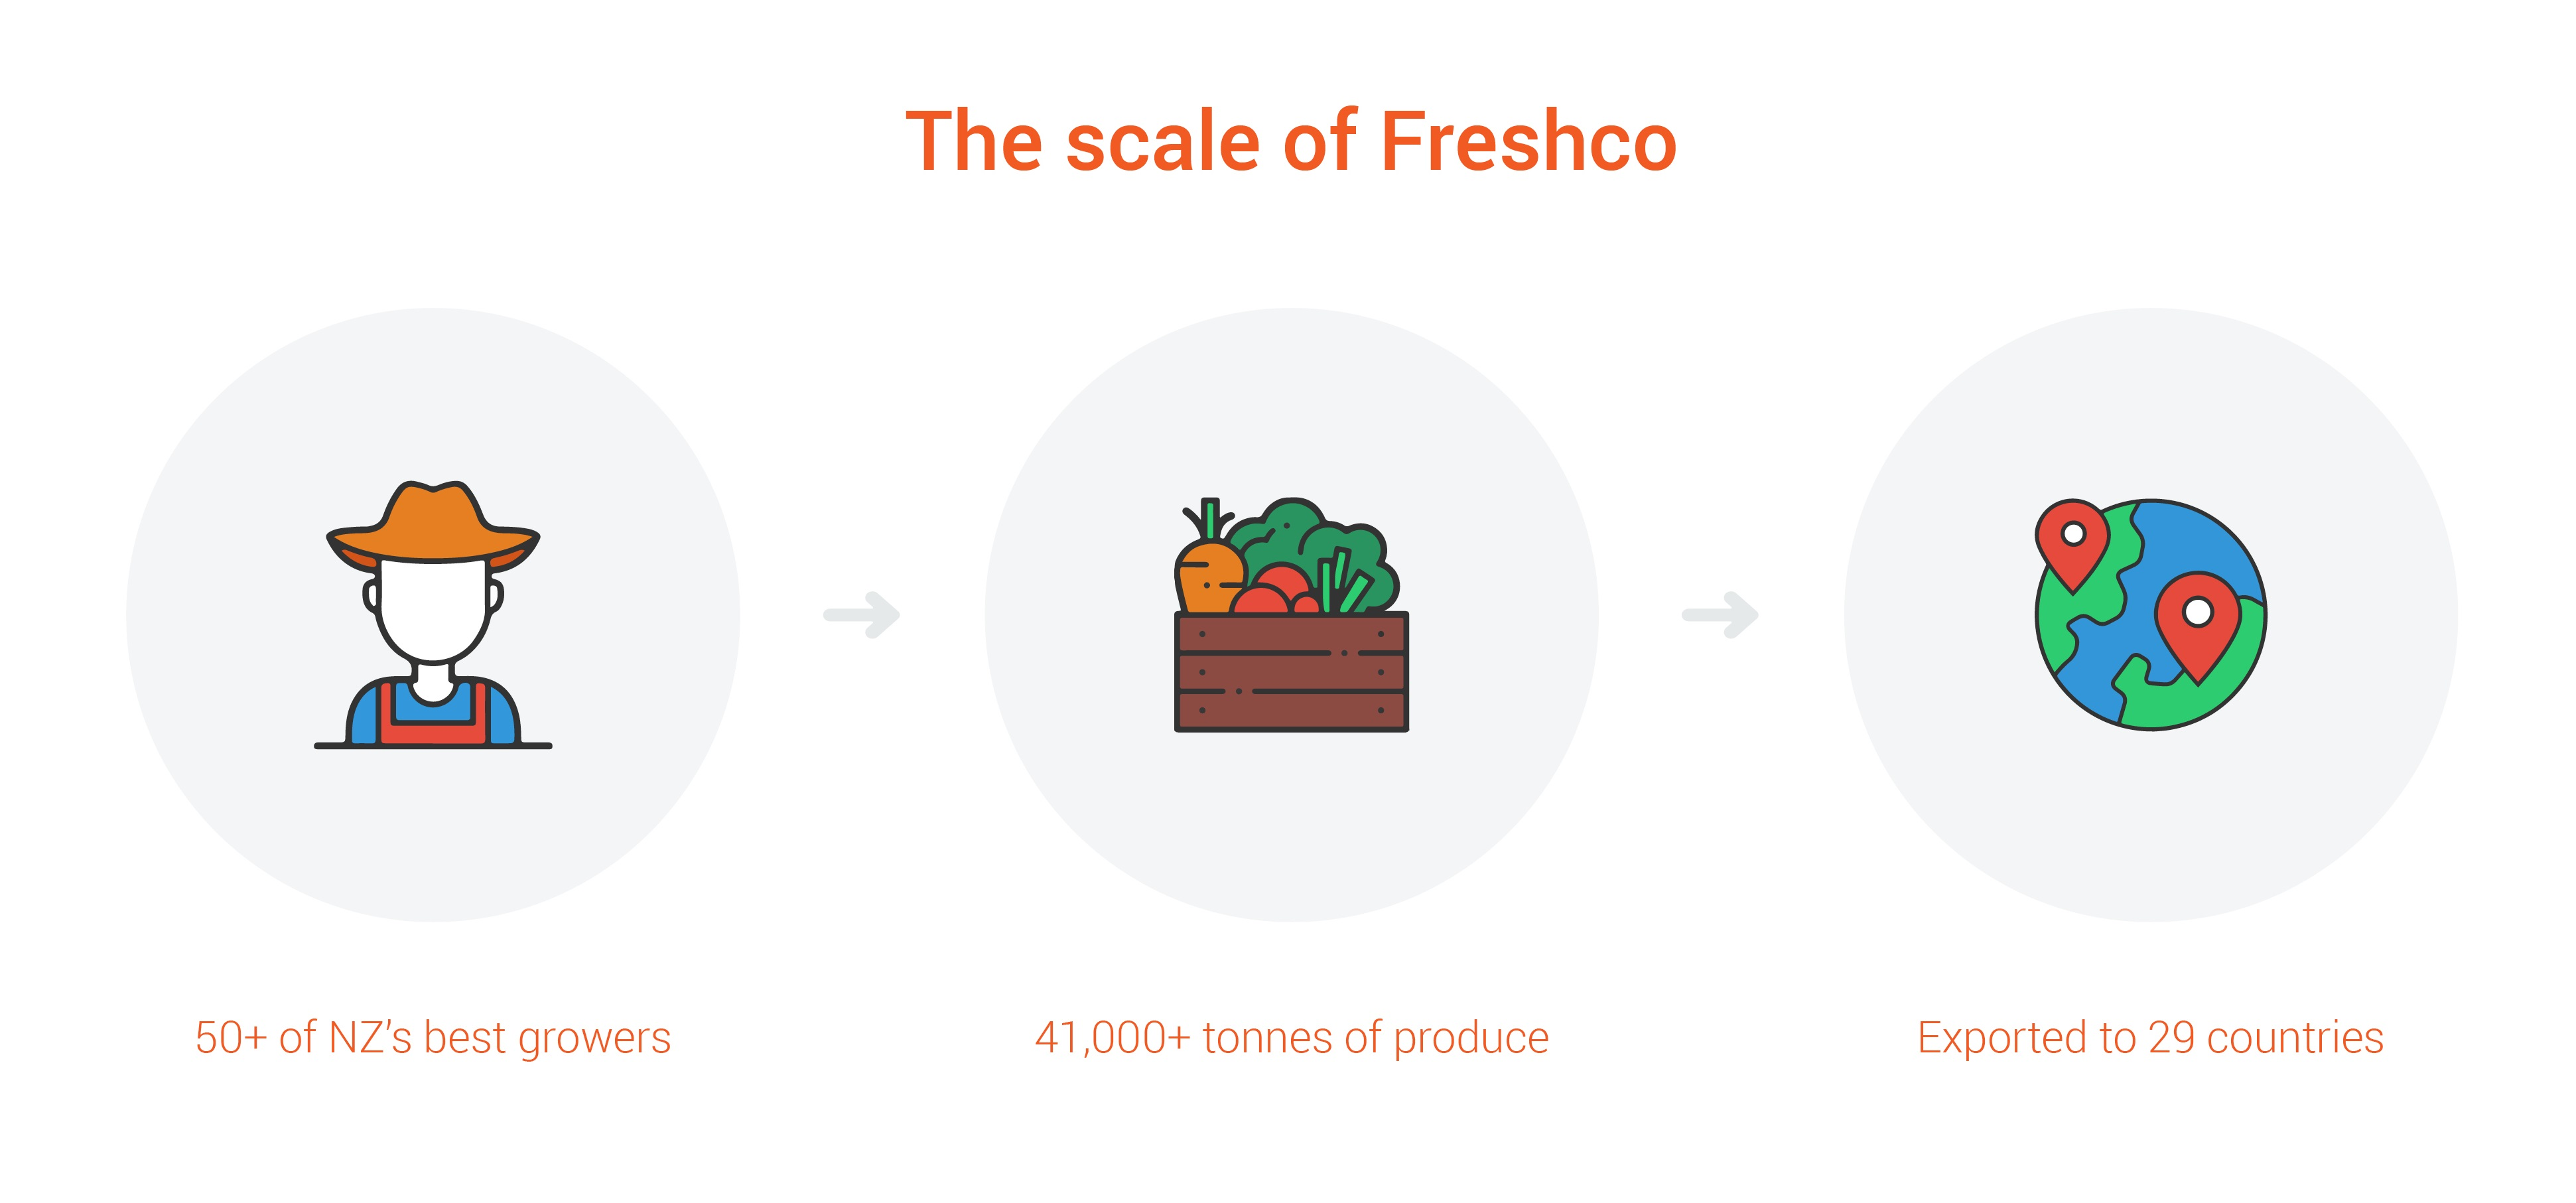 scale of Freshco infographic